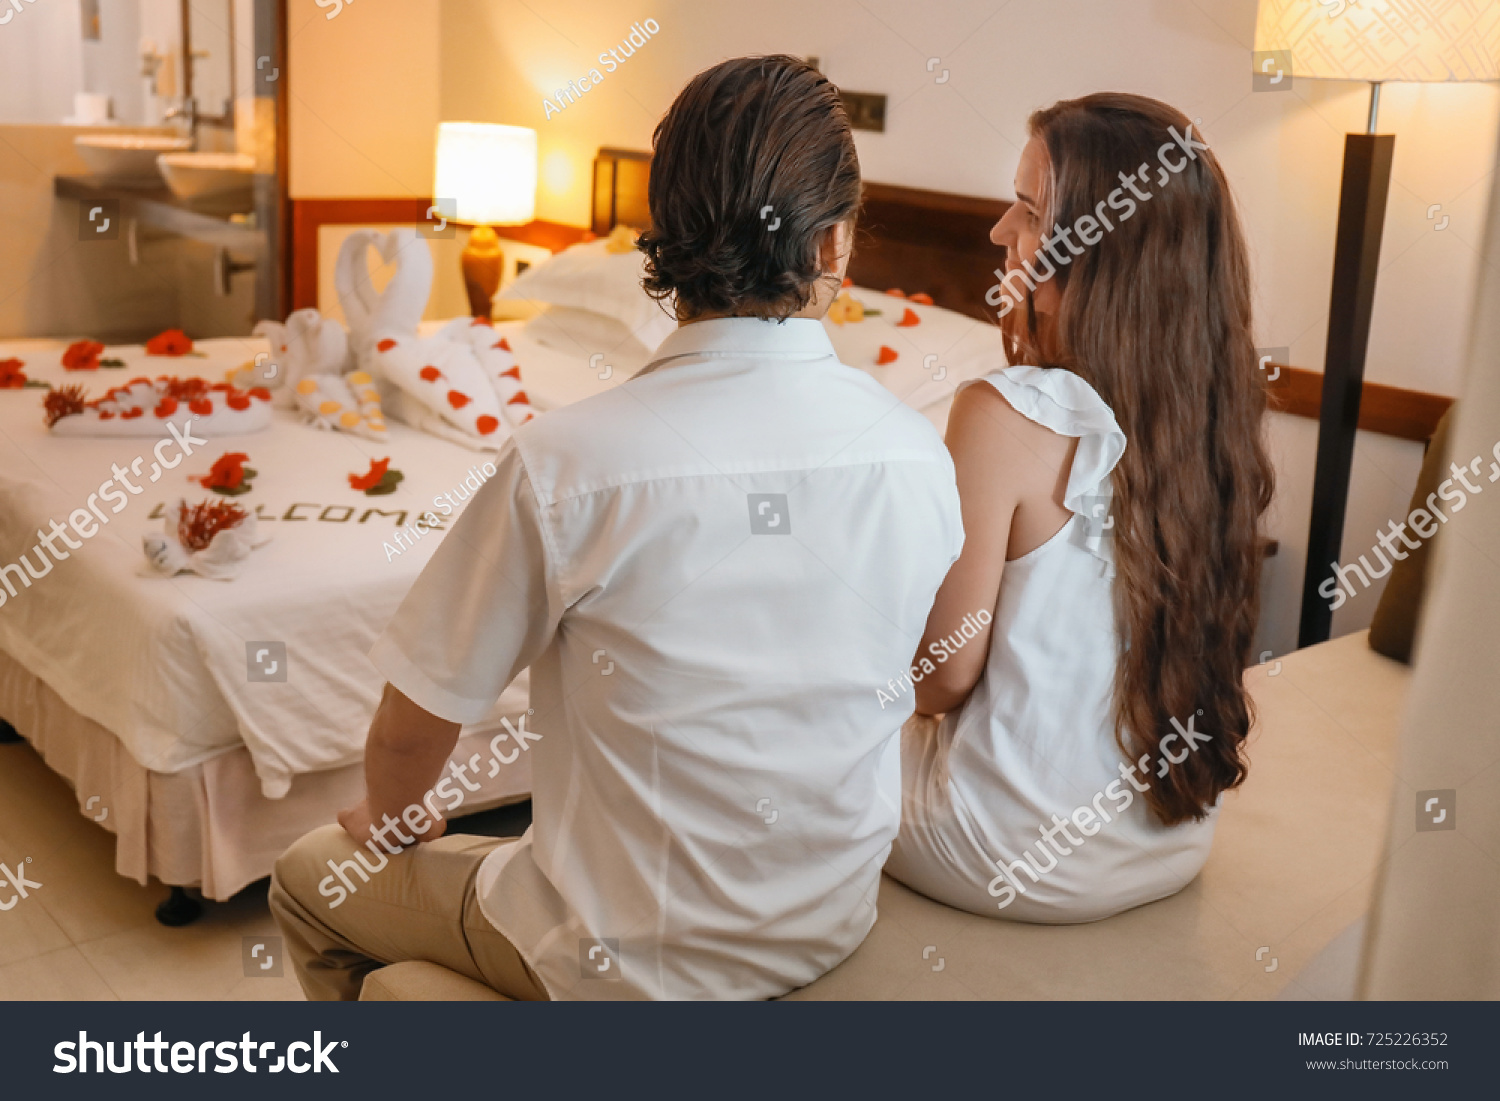 Beautiful Young Couple Hotel Room Honeymoon Stockfoto Jetzt